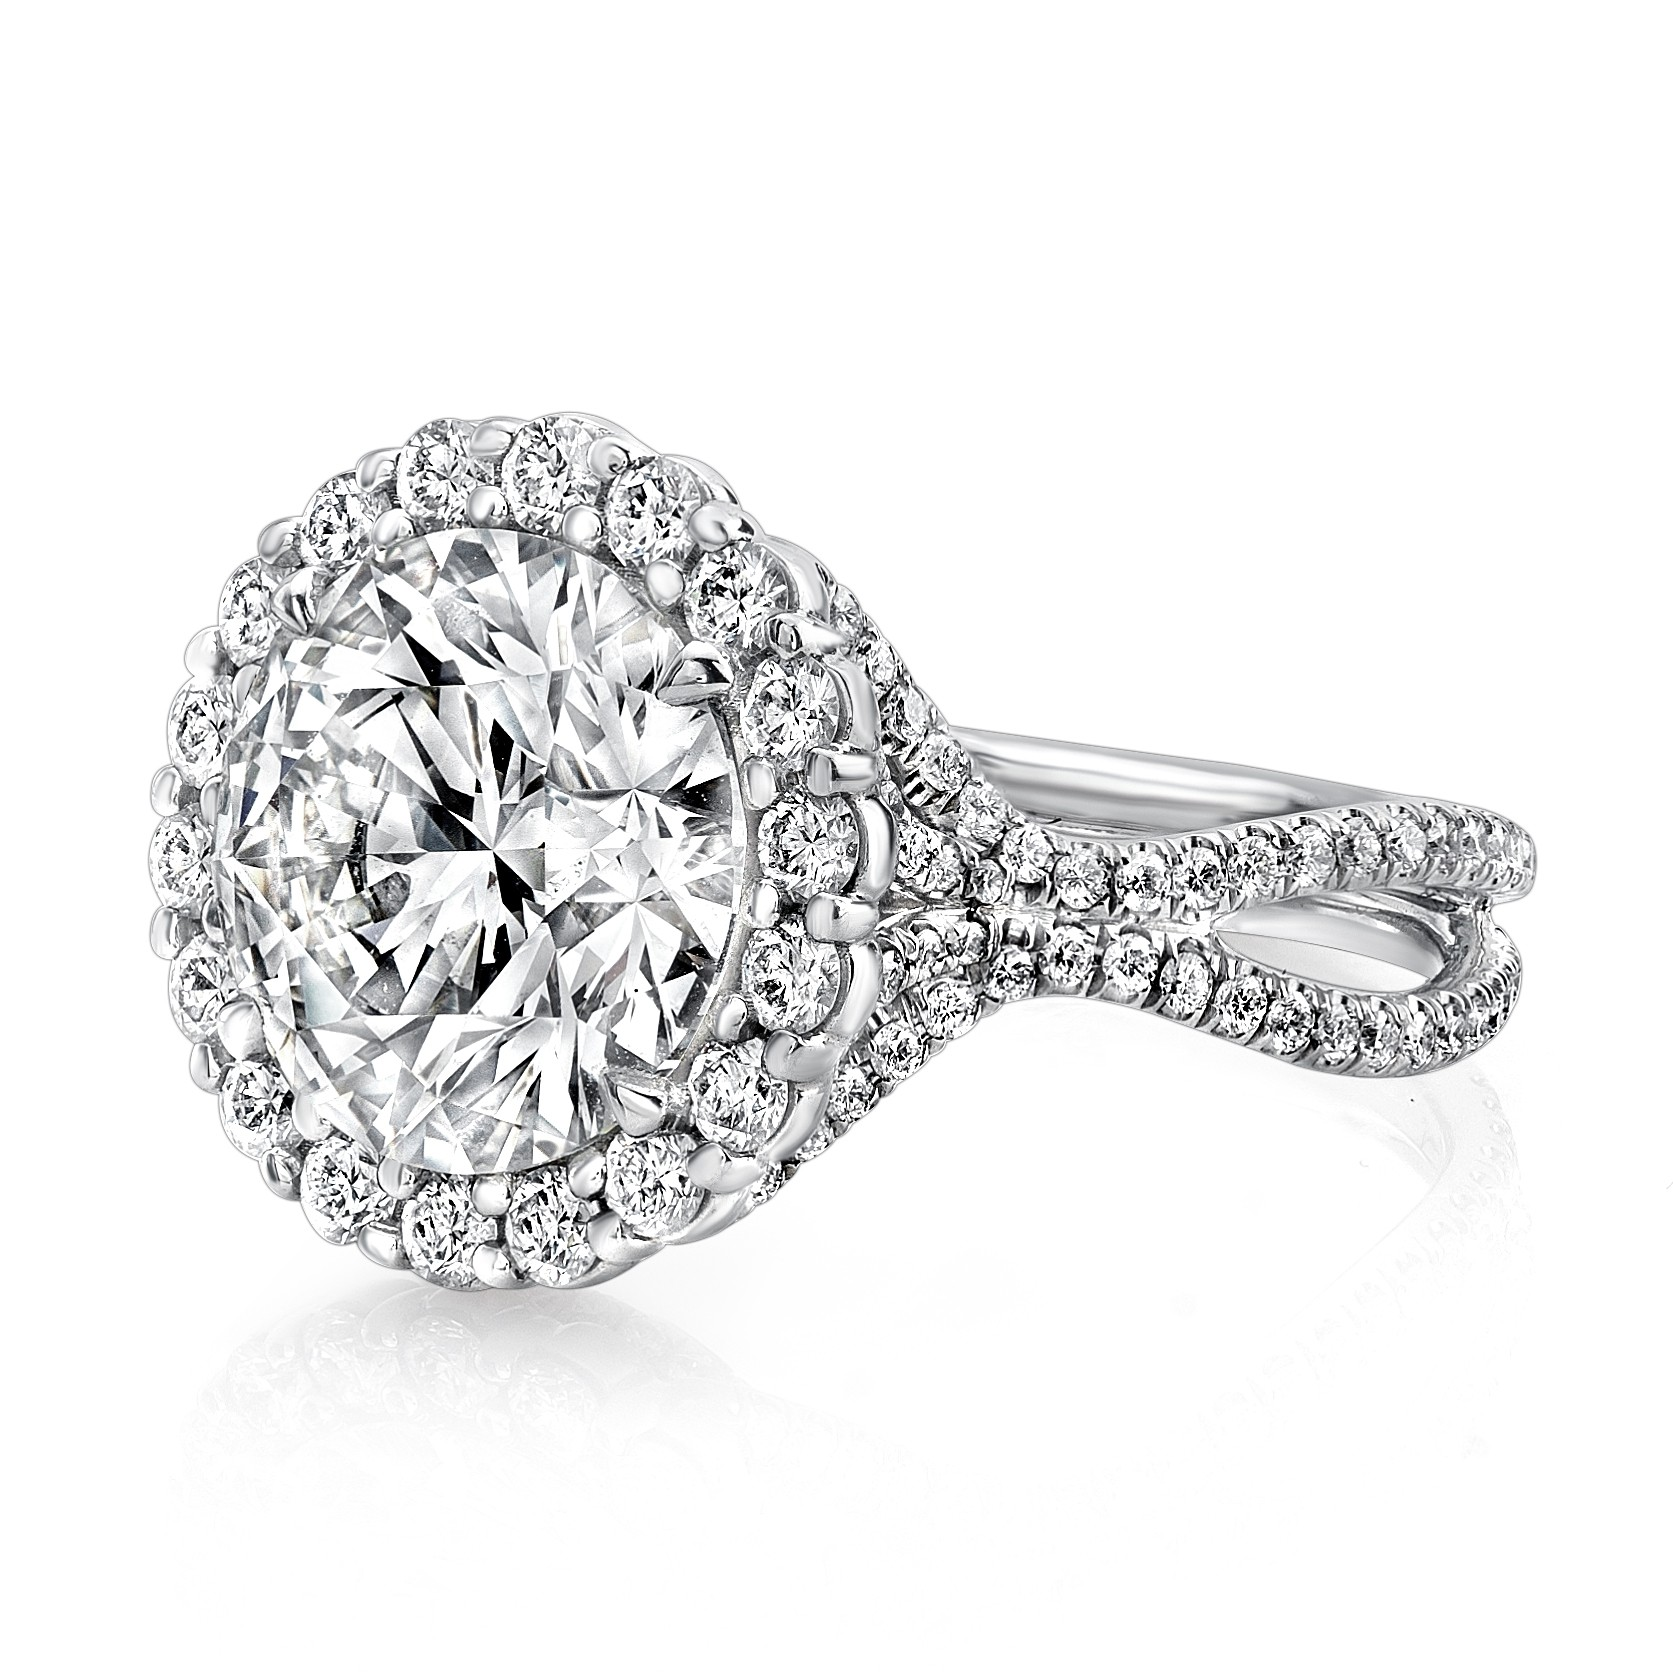 Uneek 5-Carat Round Diamond Halo Engagement Ring with Pave Double Shank, in Platinum